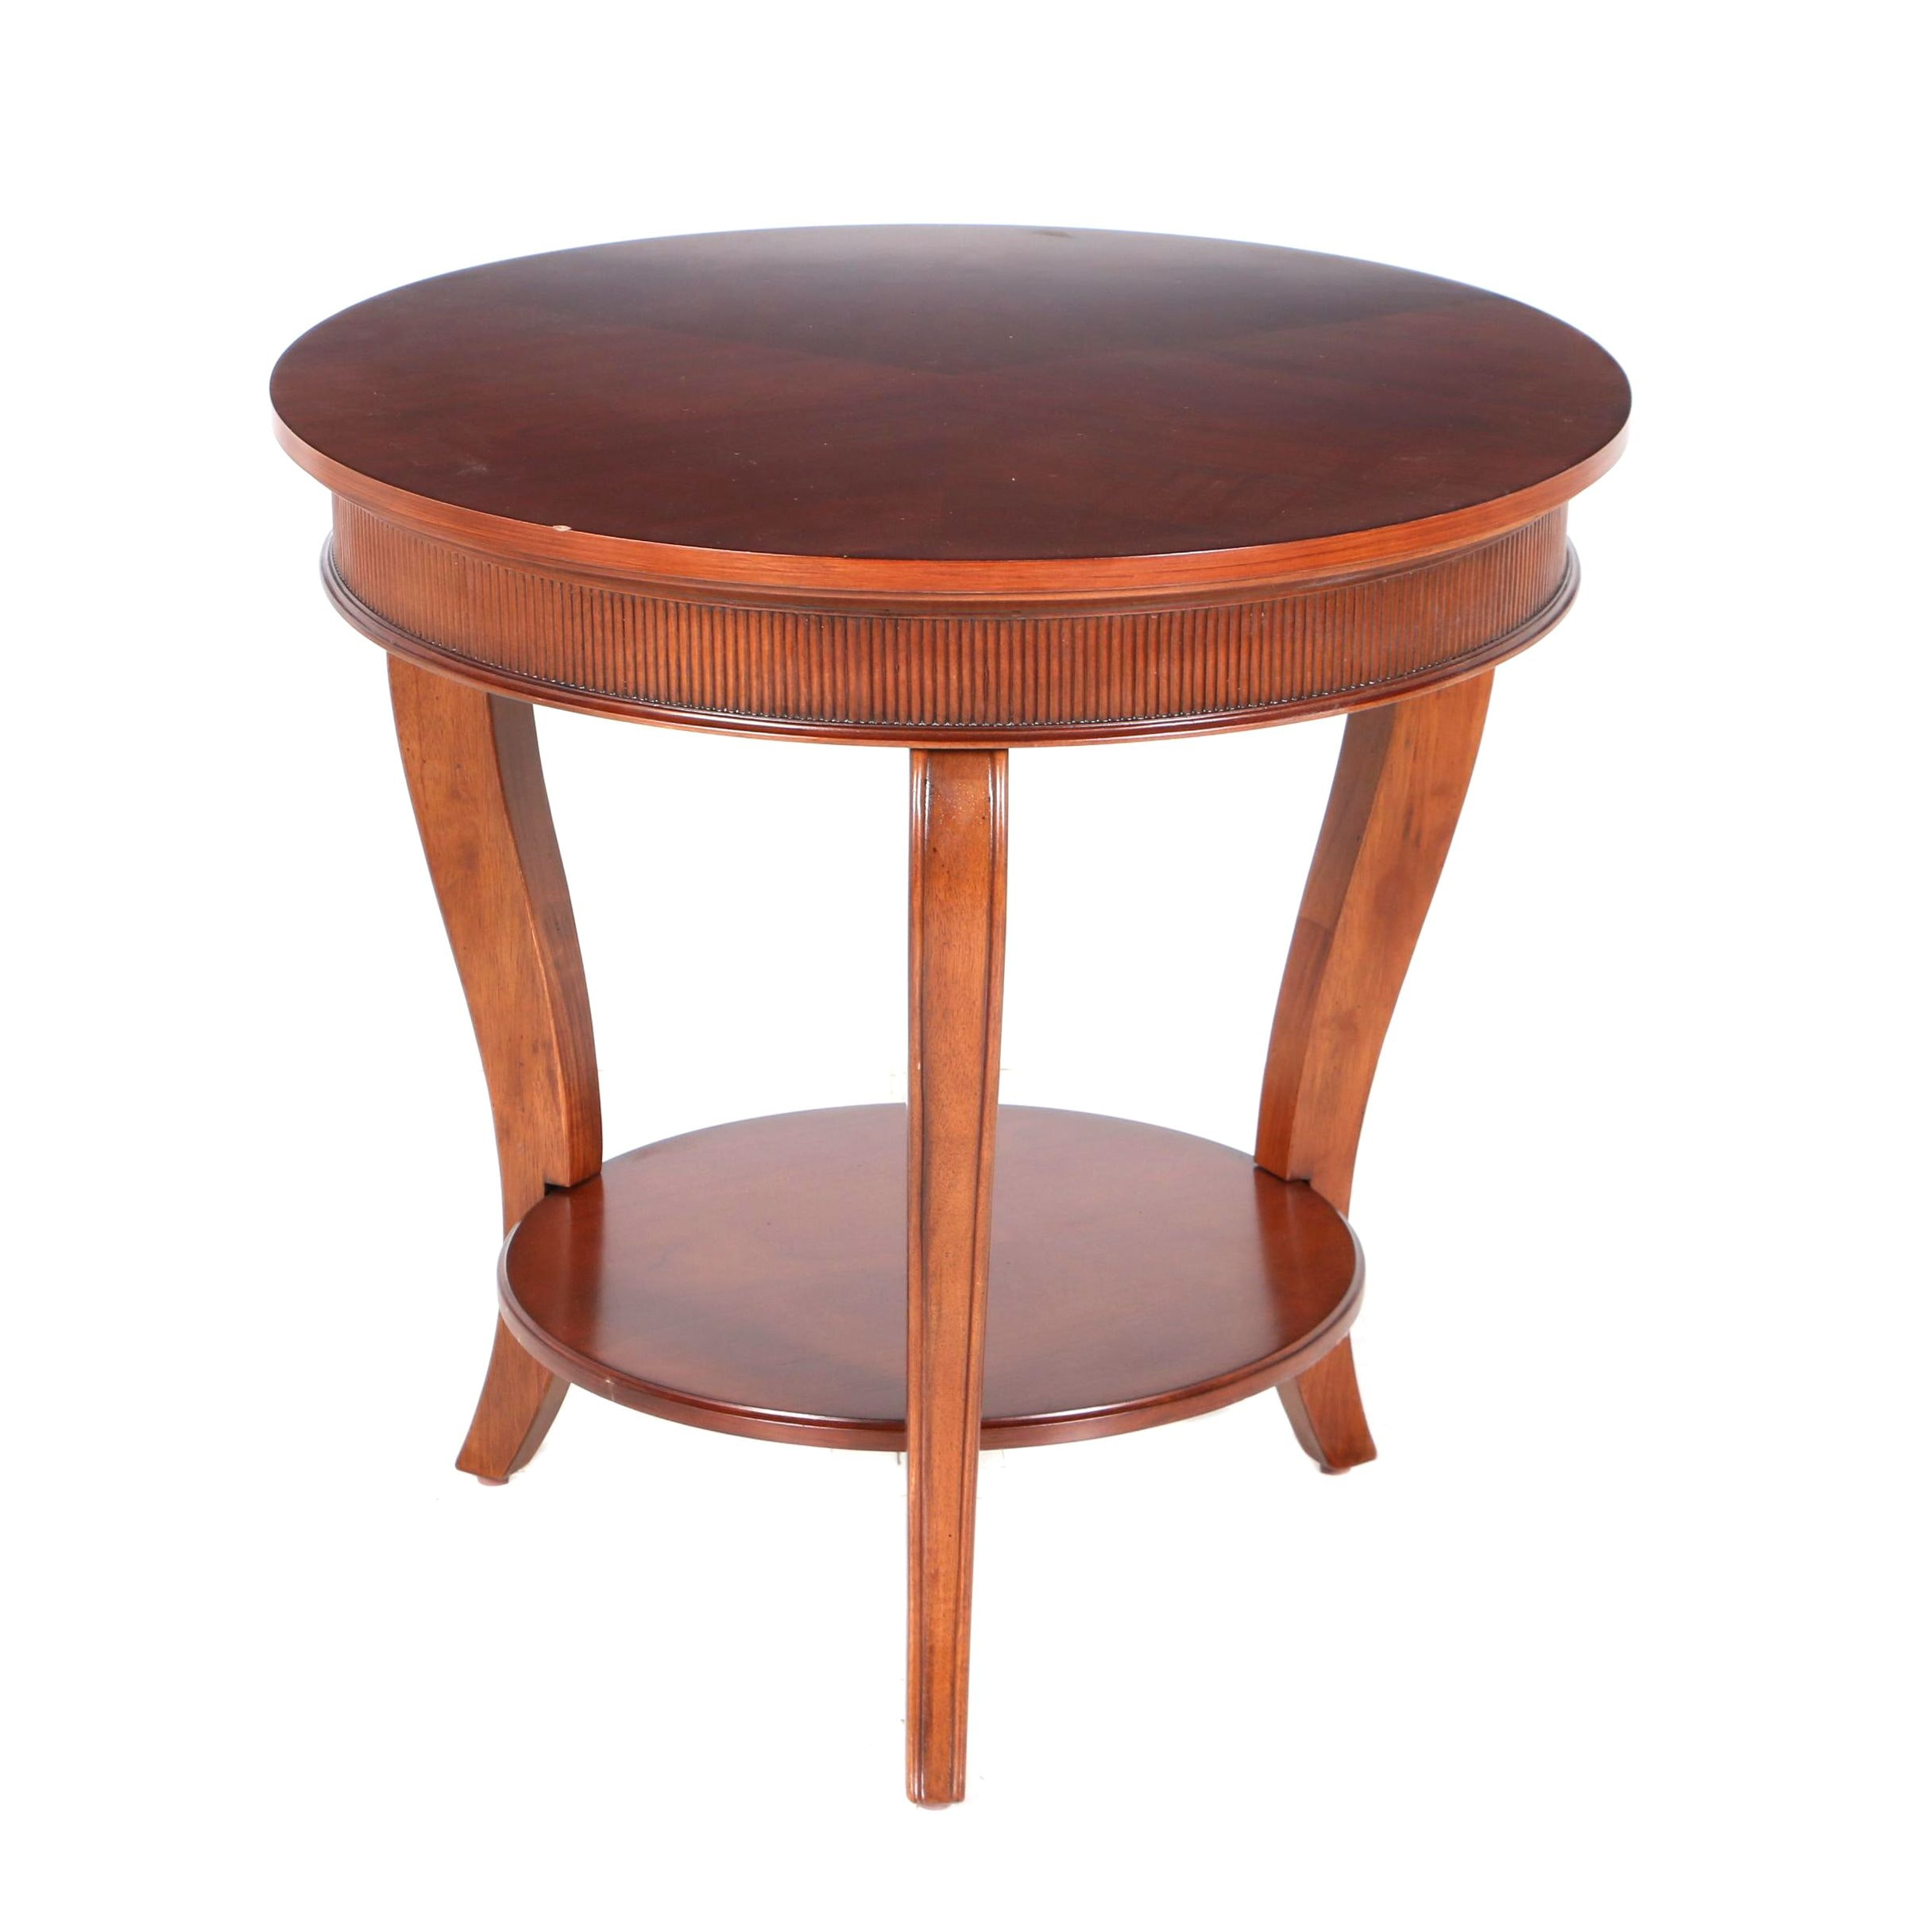 Contemporary Cherry-Stained Round Two-Tier Side Table